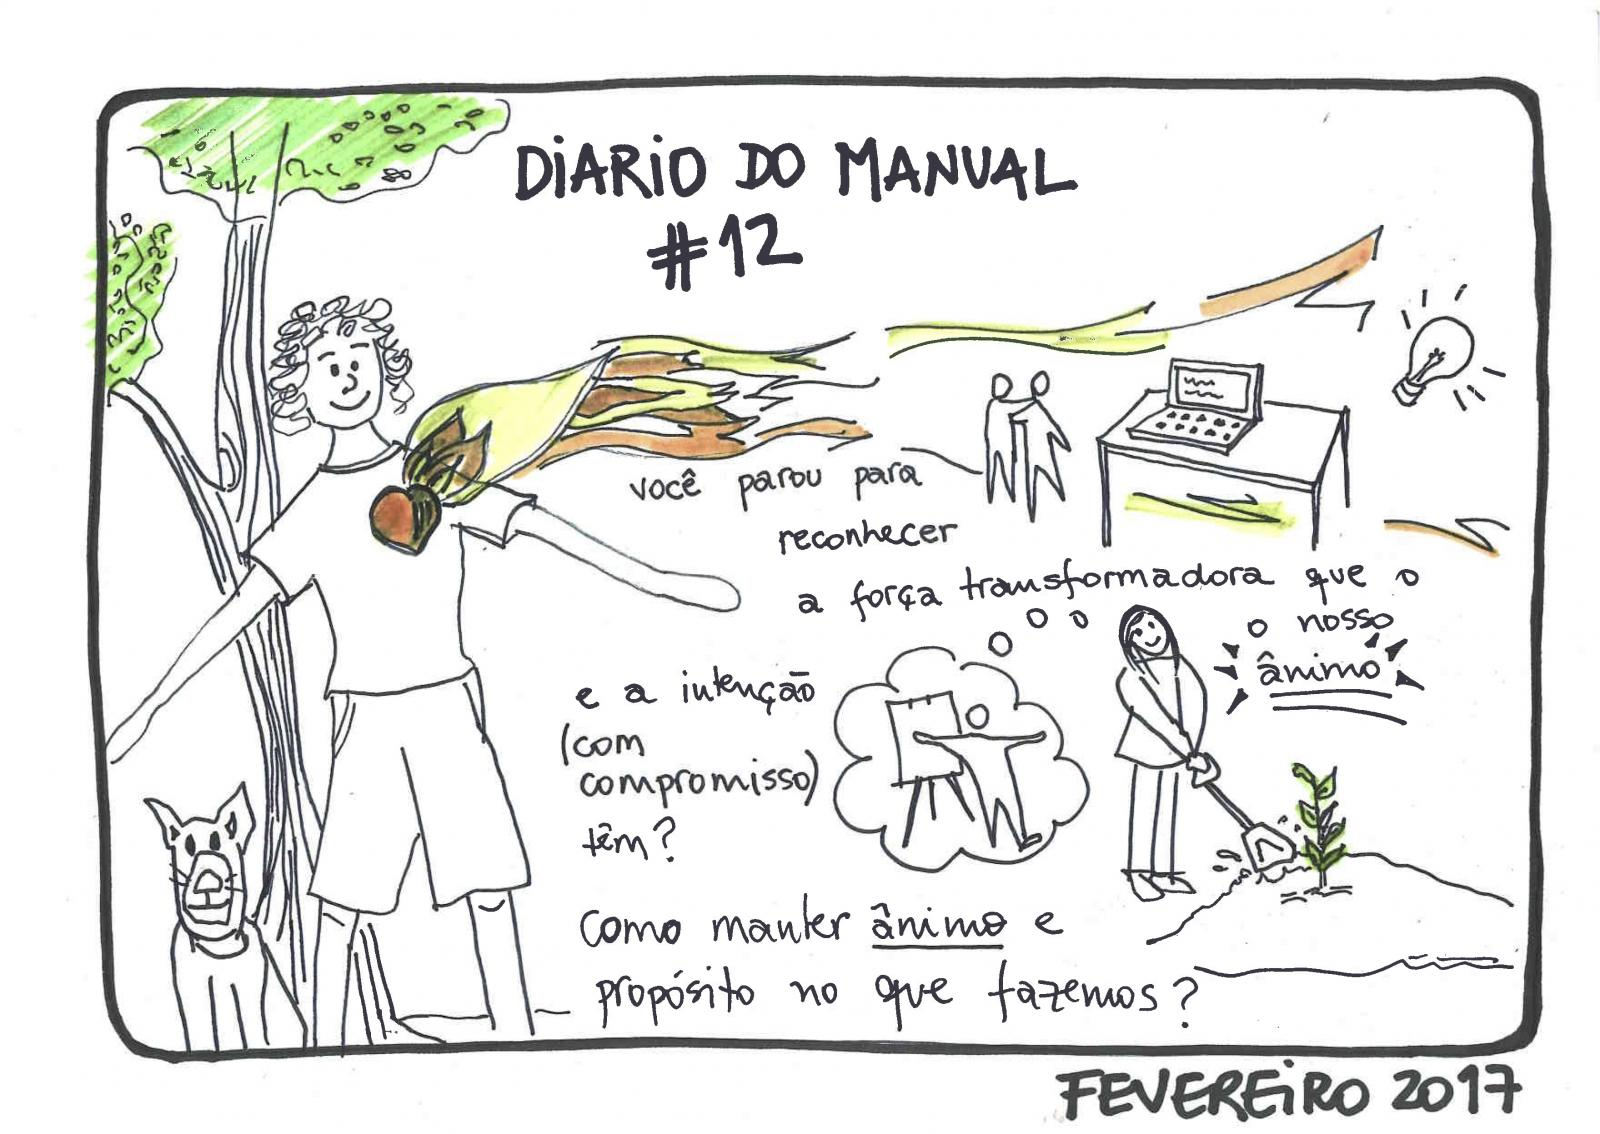 Diário do Manual #12